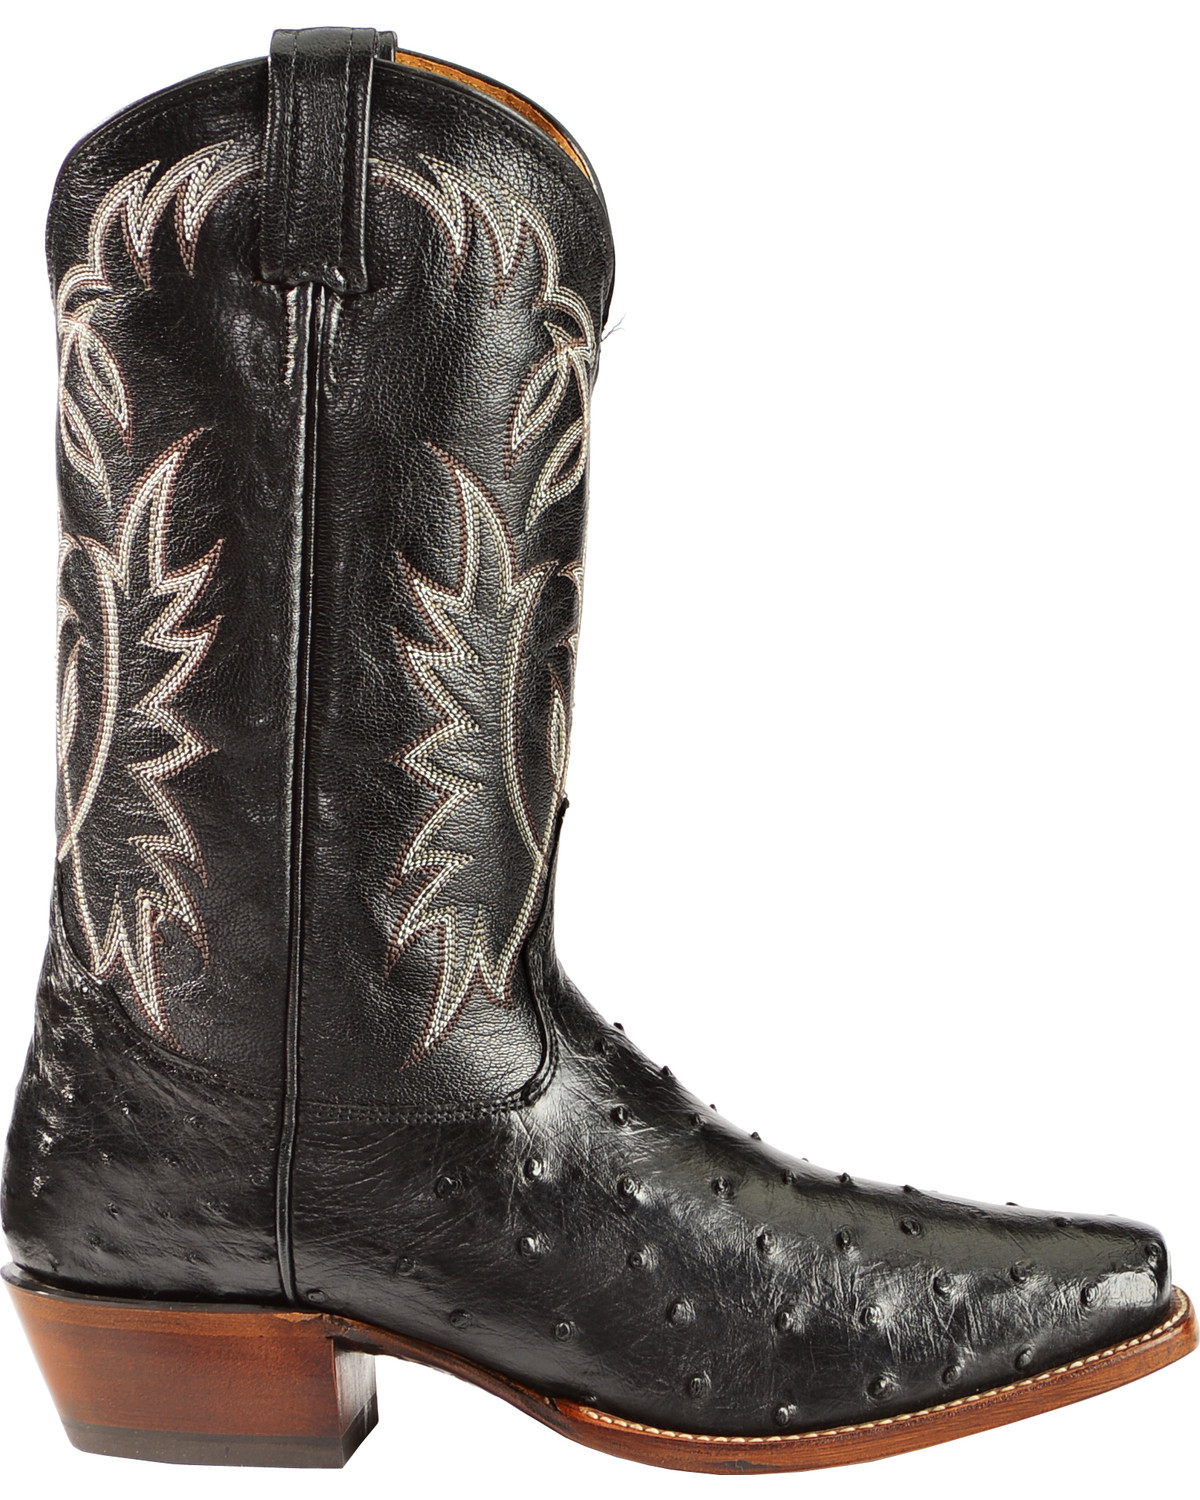 Sheplers Exclusive Tony Lama Full Quill Ostrich Cowboy